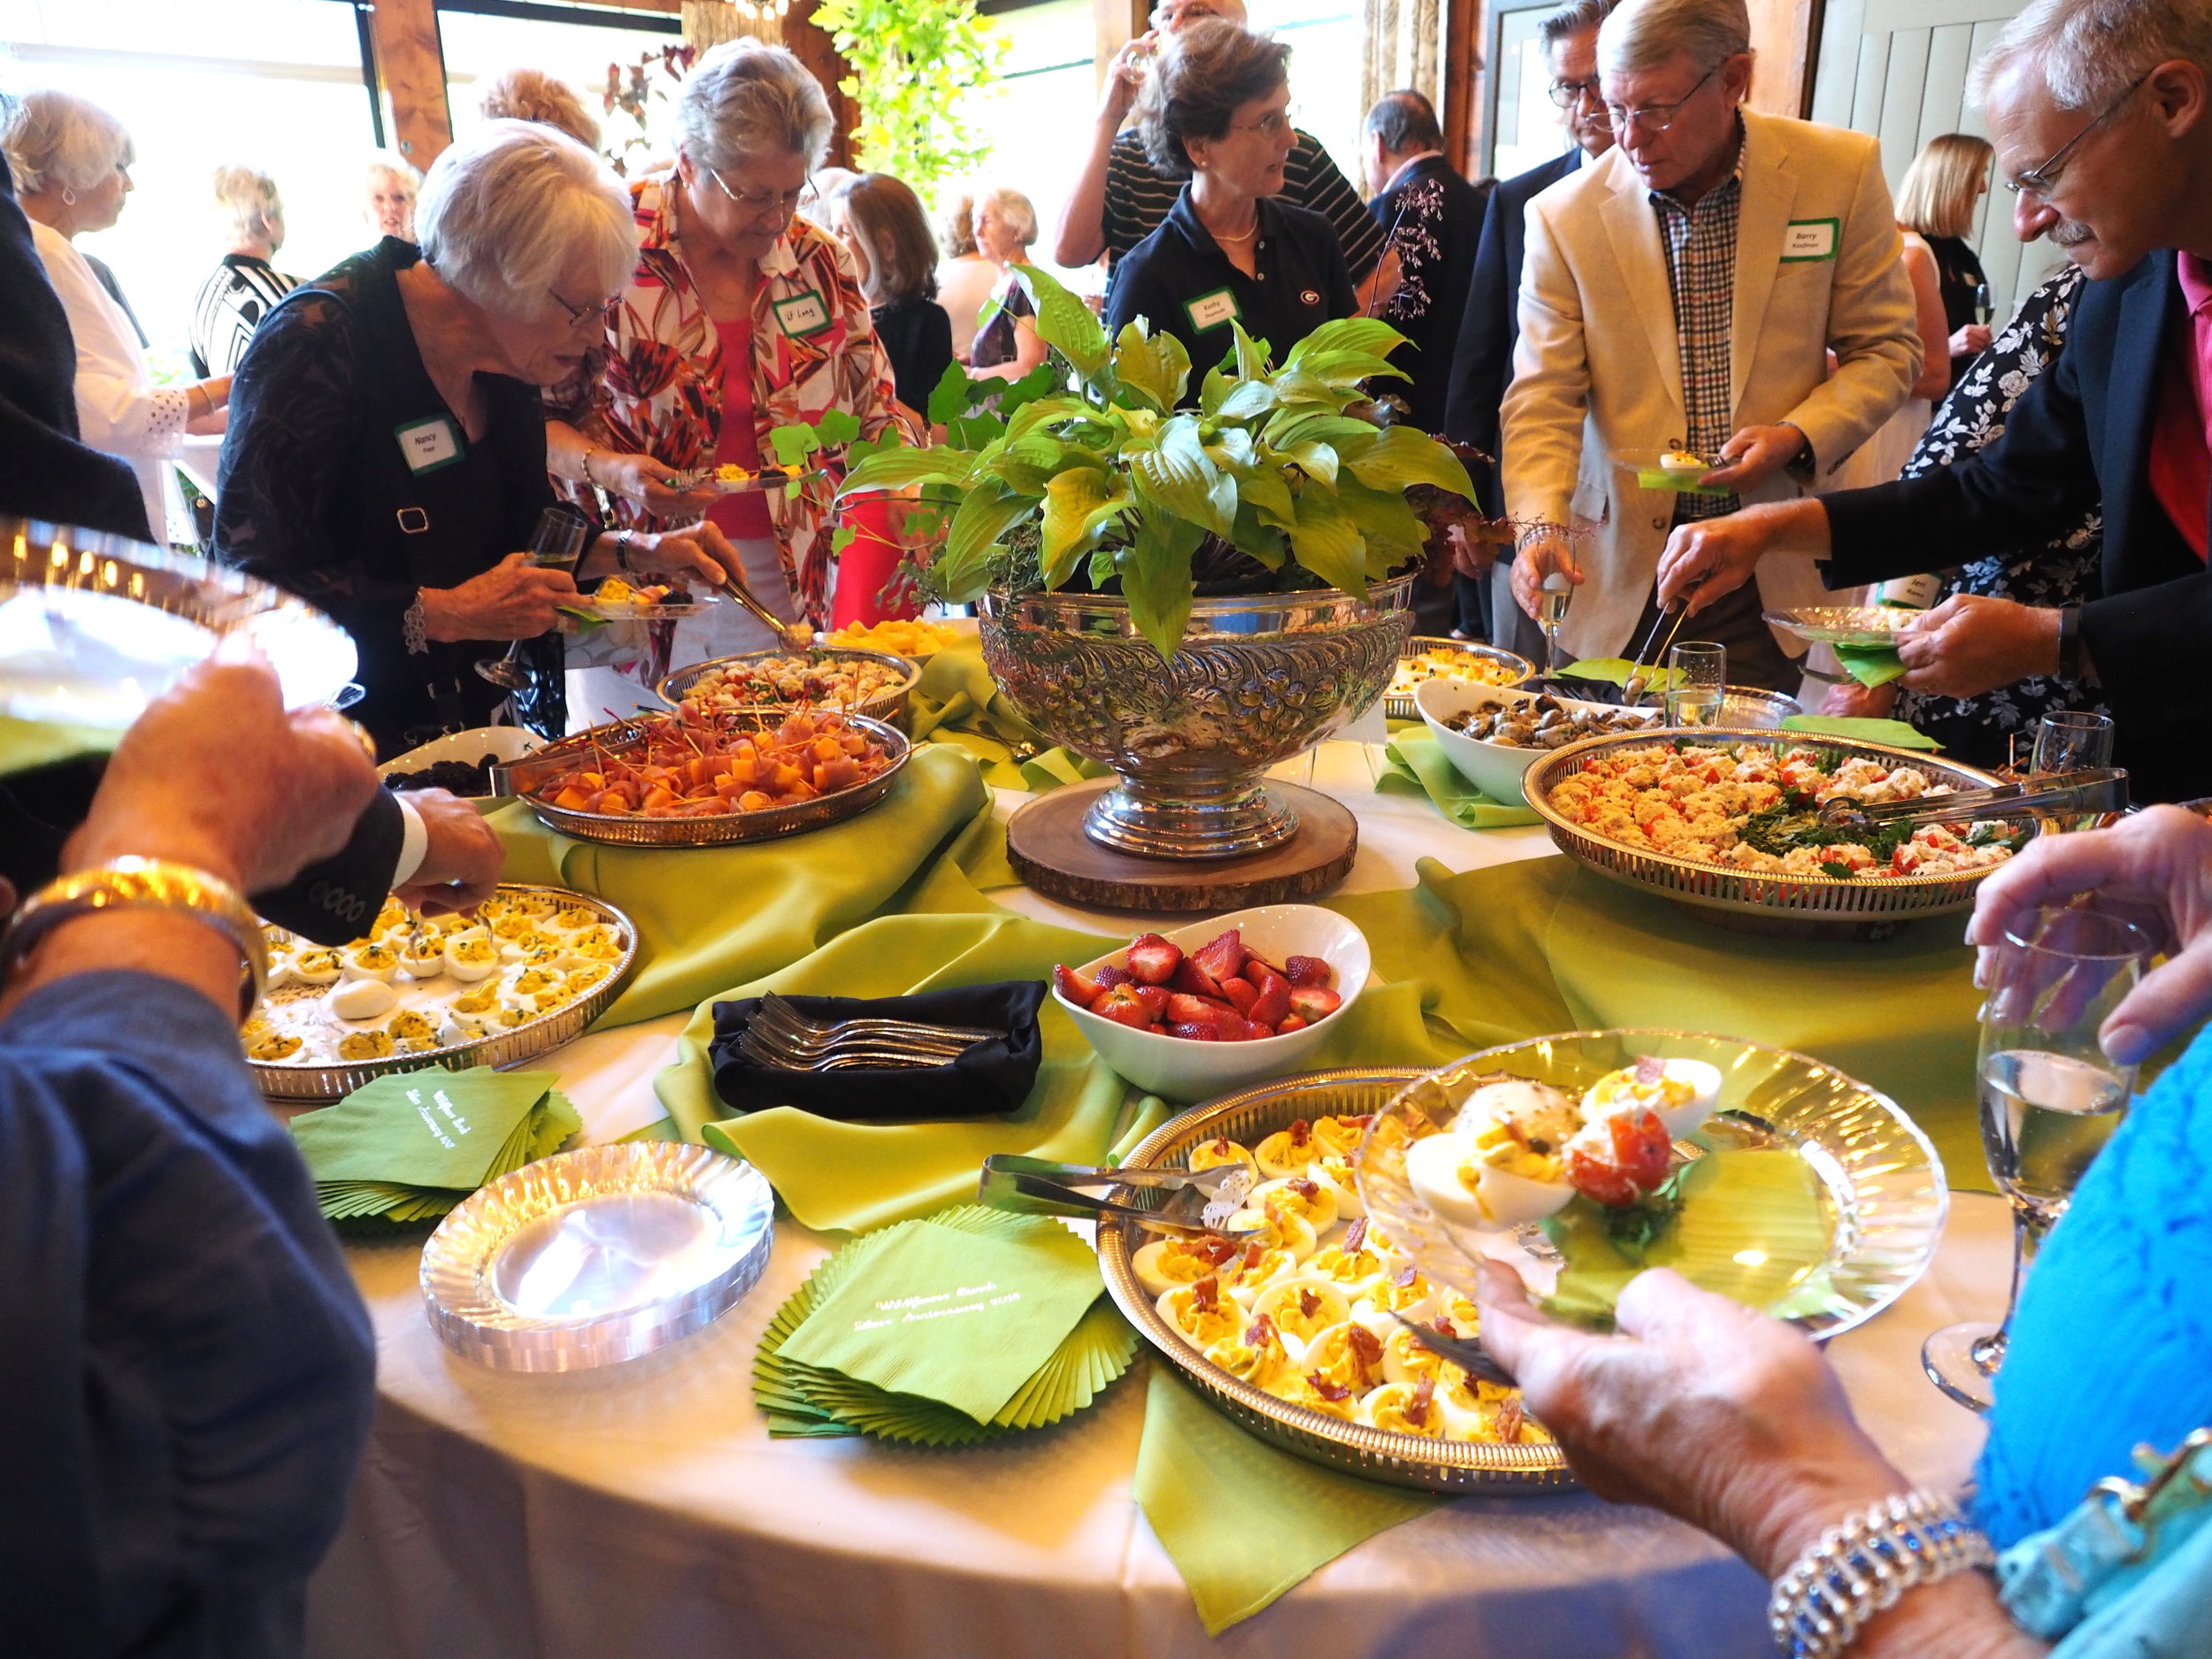 Following the conversation and toast with the Dooleys, WFB celebrants  	enjoyed a beautiful array of appetizers and more conversation.